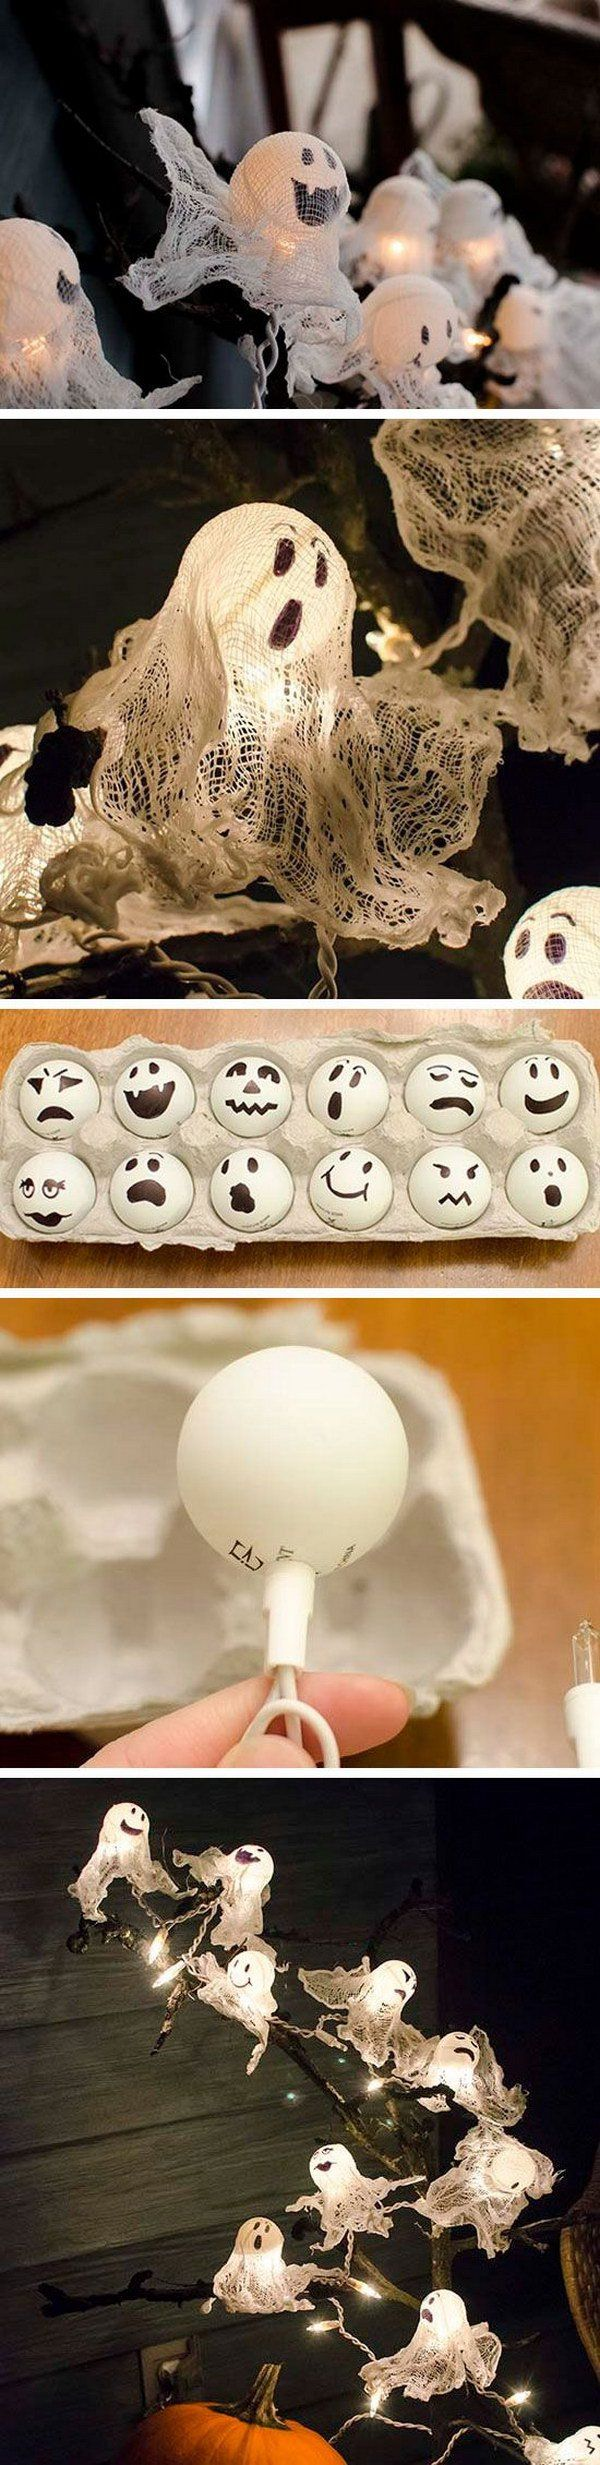 http://Papr.Club - Another cool link is HowDoIShipMyCar.com  Ping Pong Ball Ghost Lights.